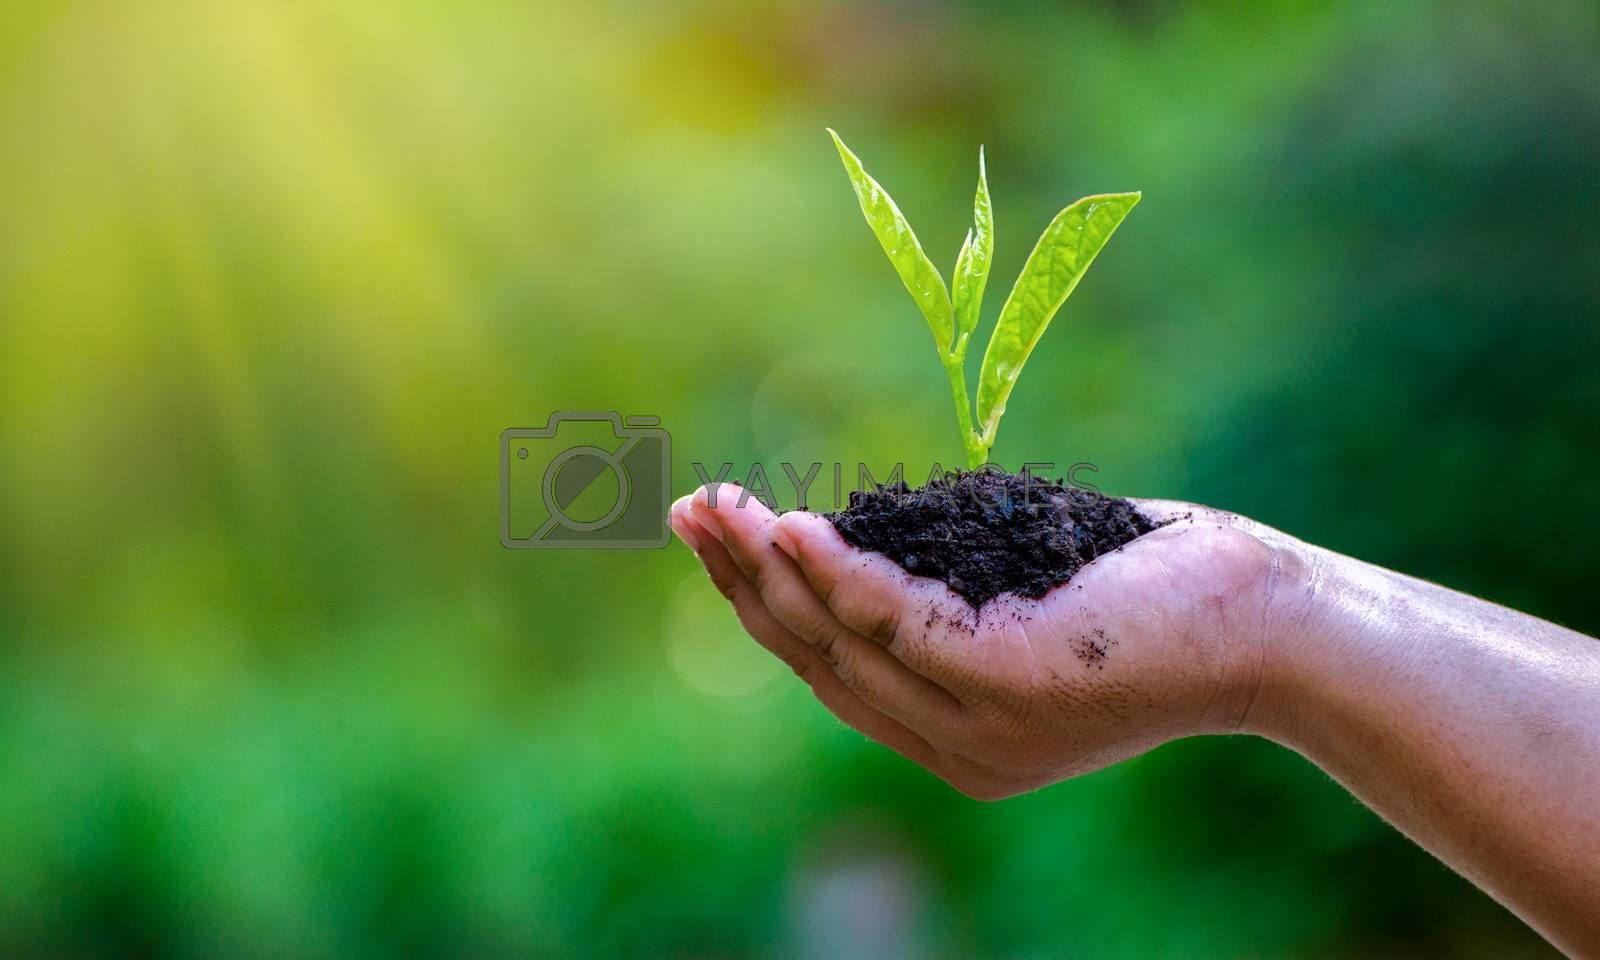 In the hands of trees growing seedlings. Bokeh green Background Female hand holding tree on nature field grass Forest conservation concept by Sarayut